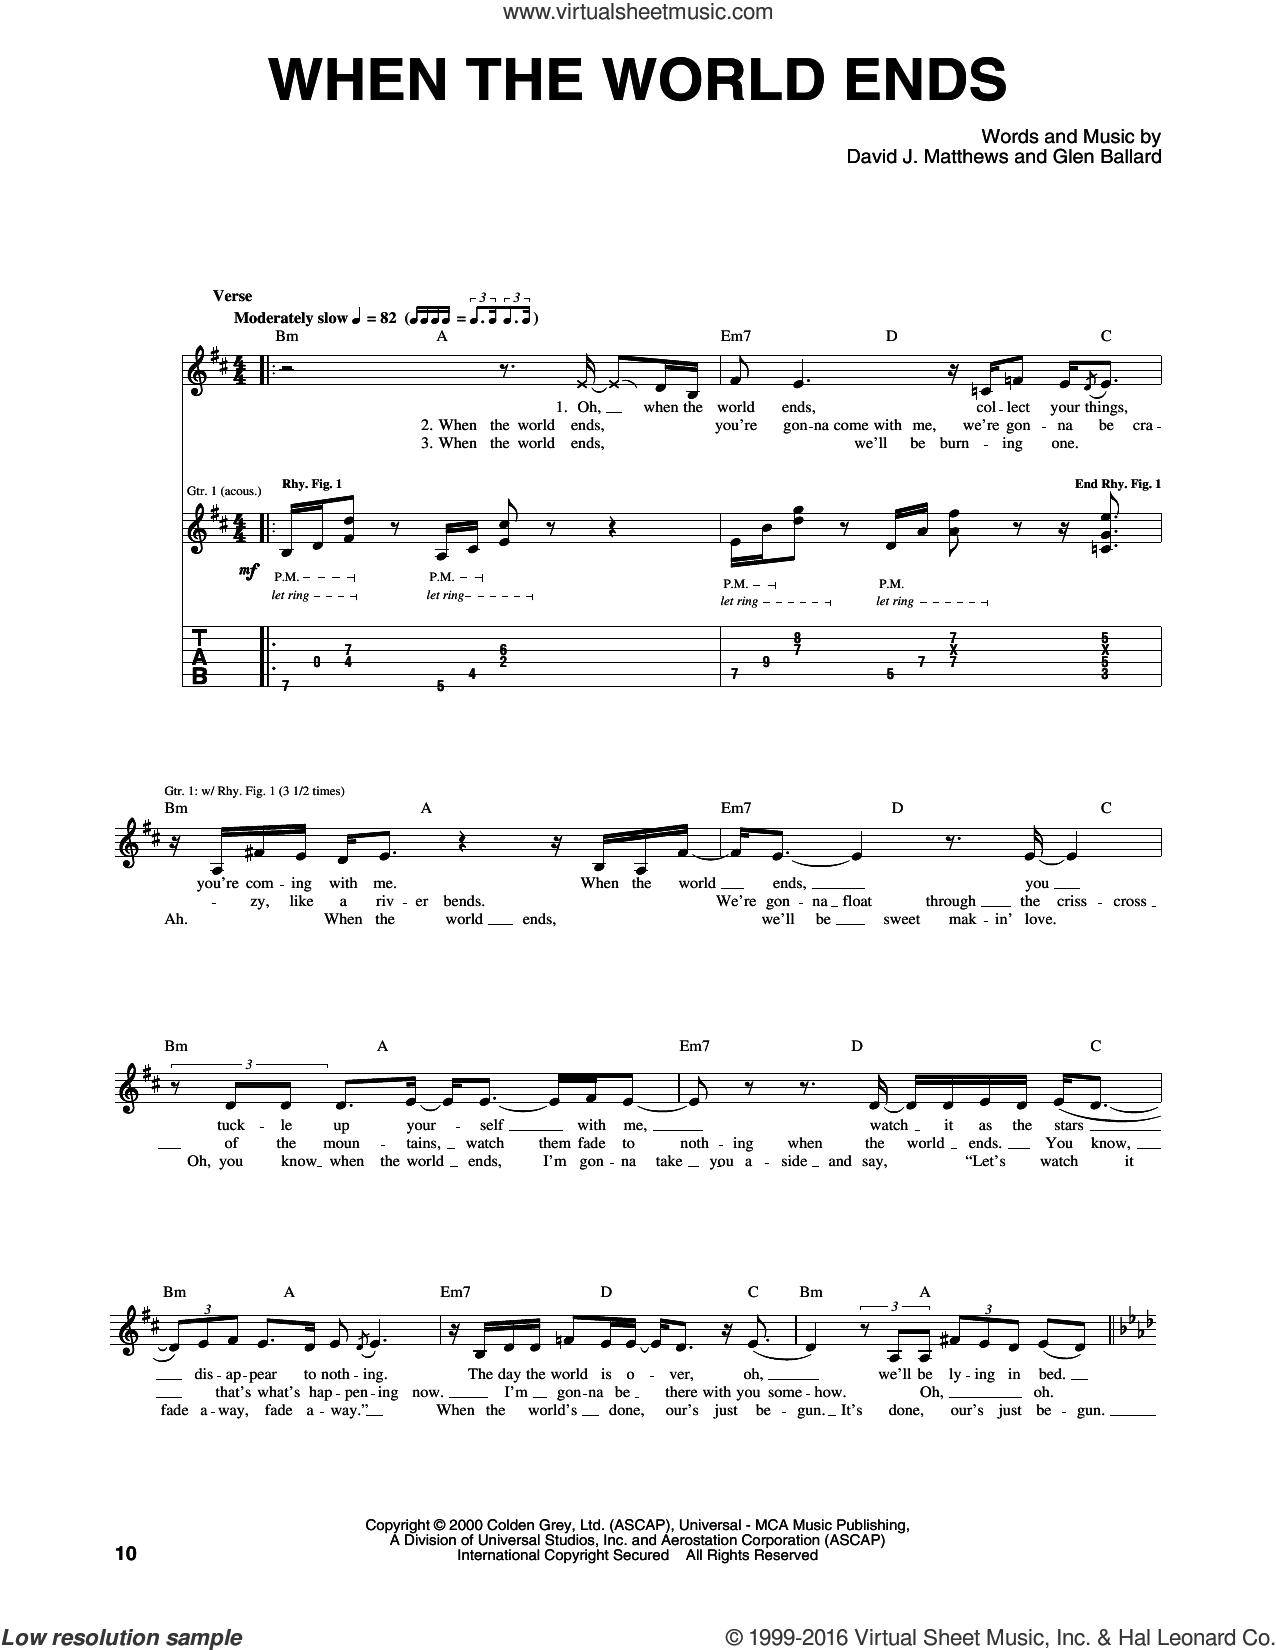 When The World Ends sheet music for guitar (tablature) by Glen Ballard and Dave Matthews Band. Score Image Preview.